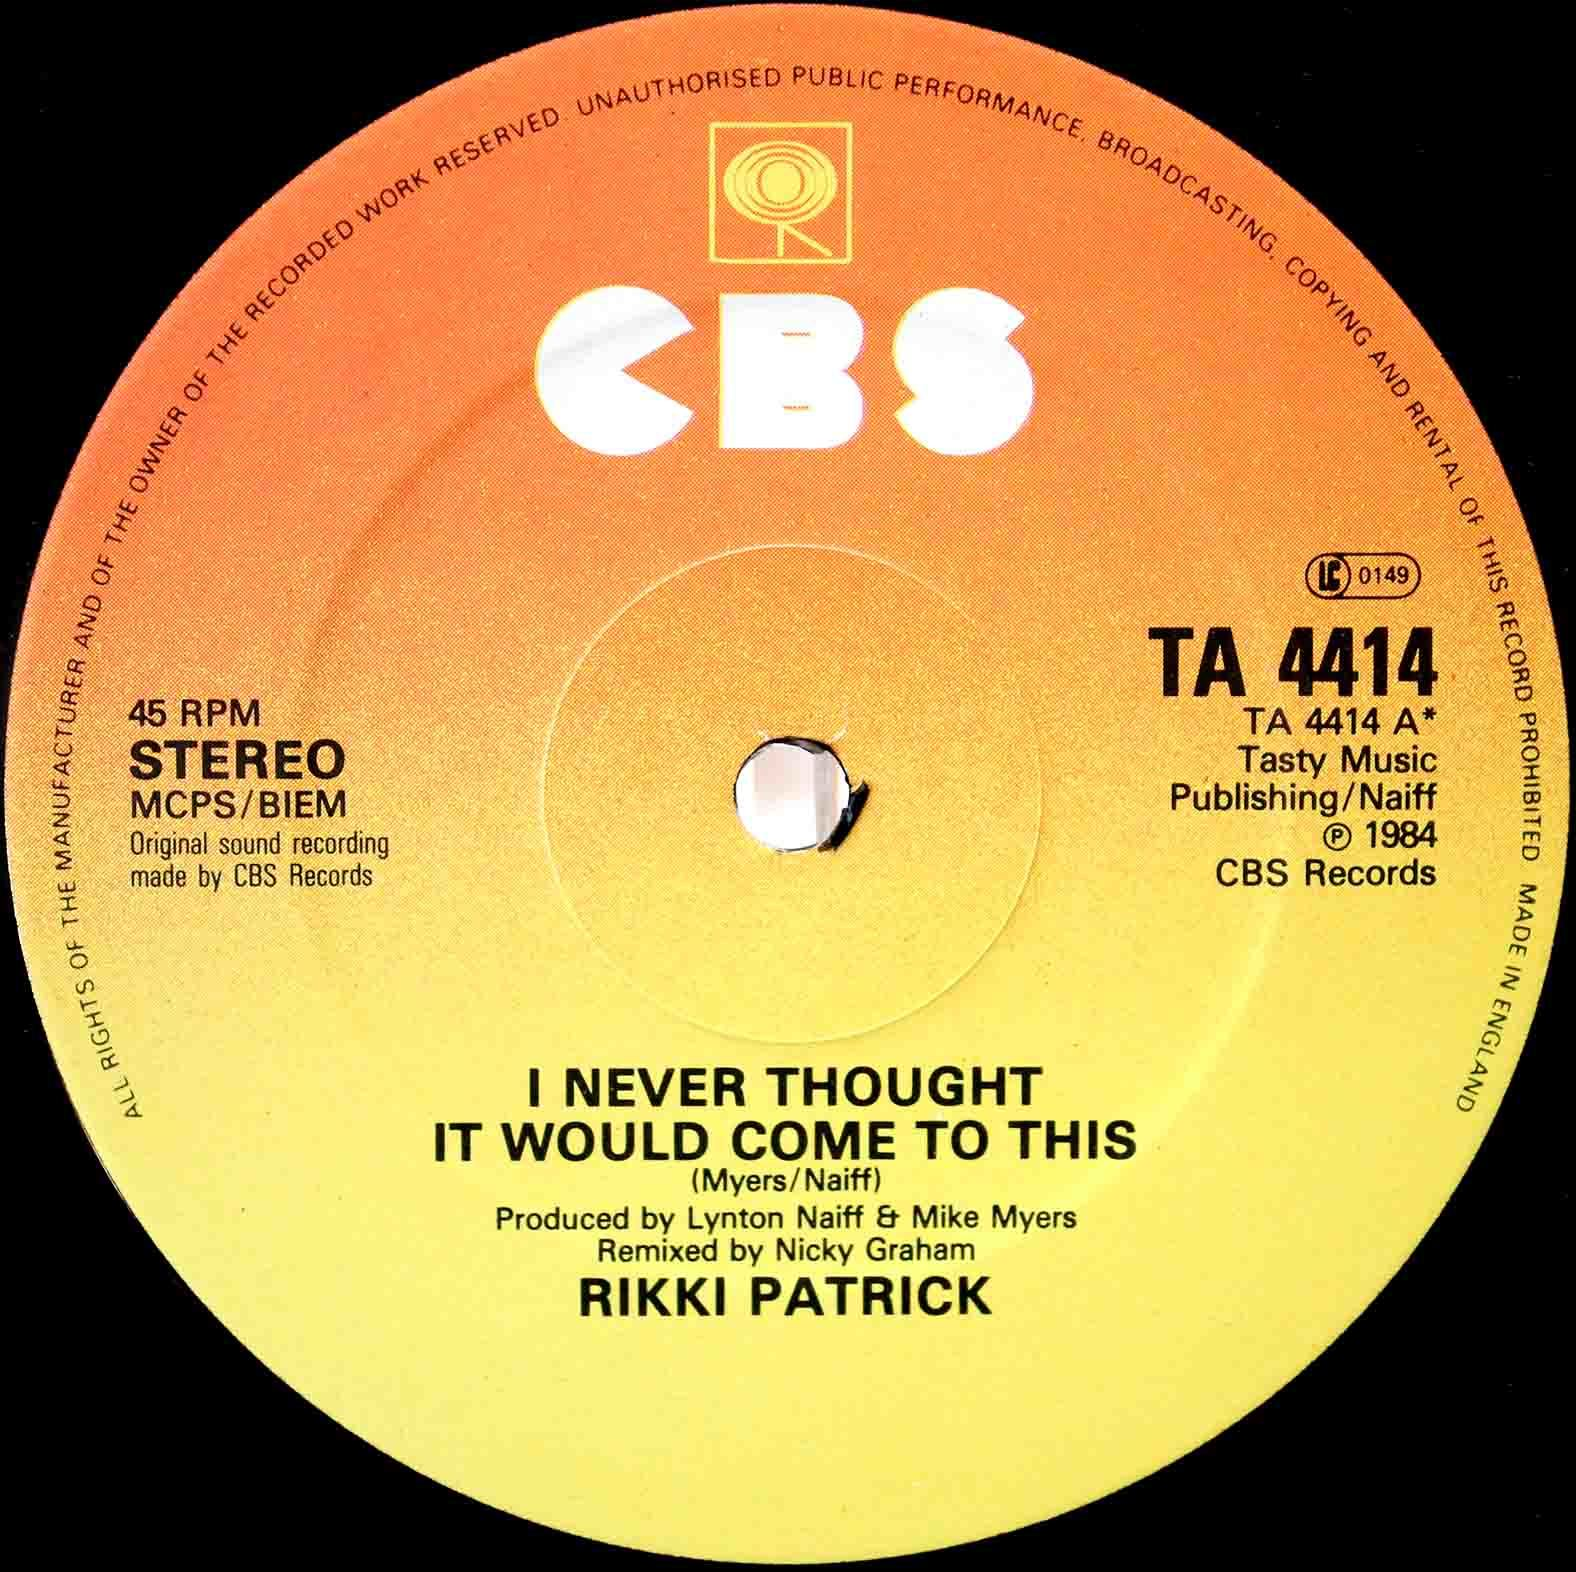 Rikki Patrick – I Never Thought It Would Come To This 03